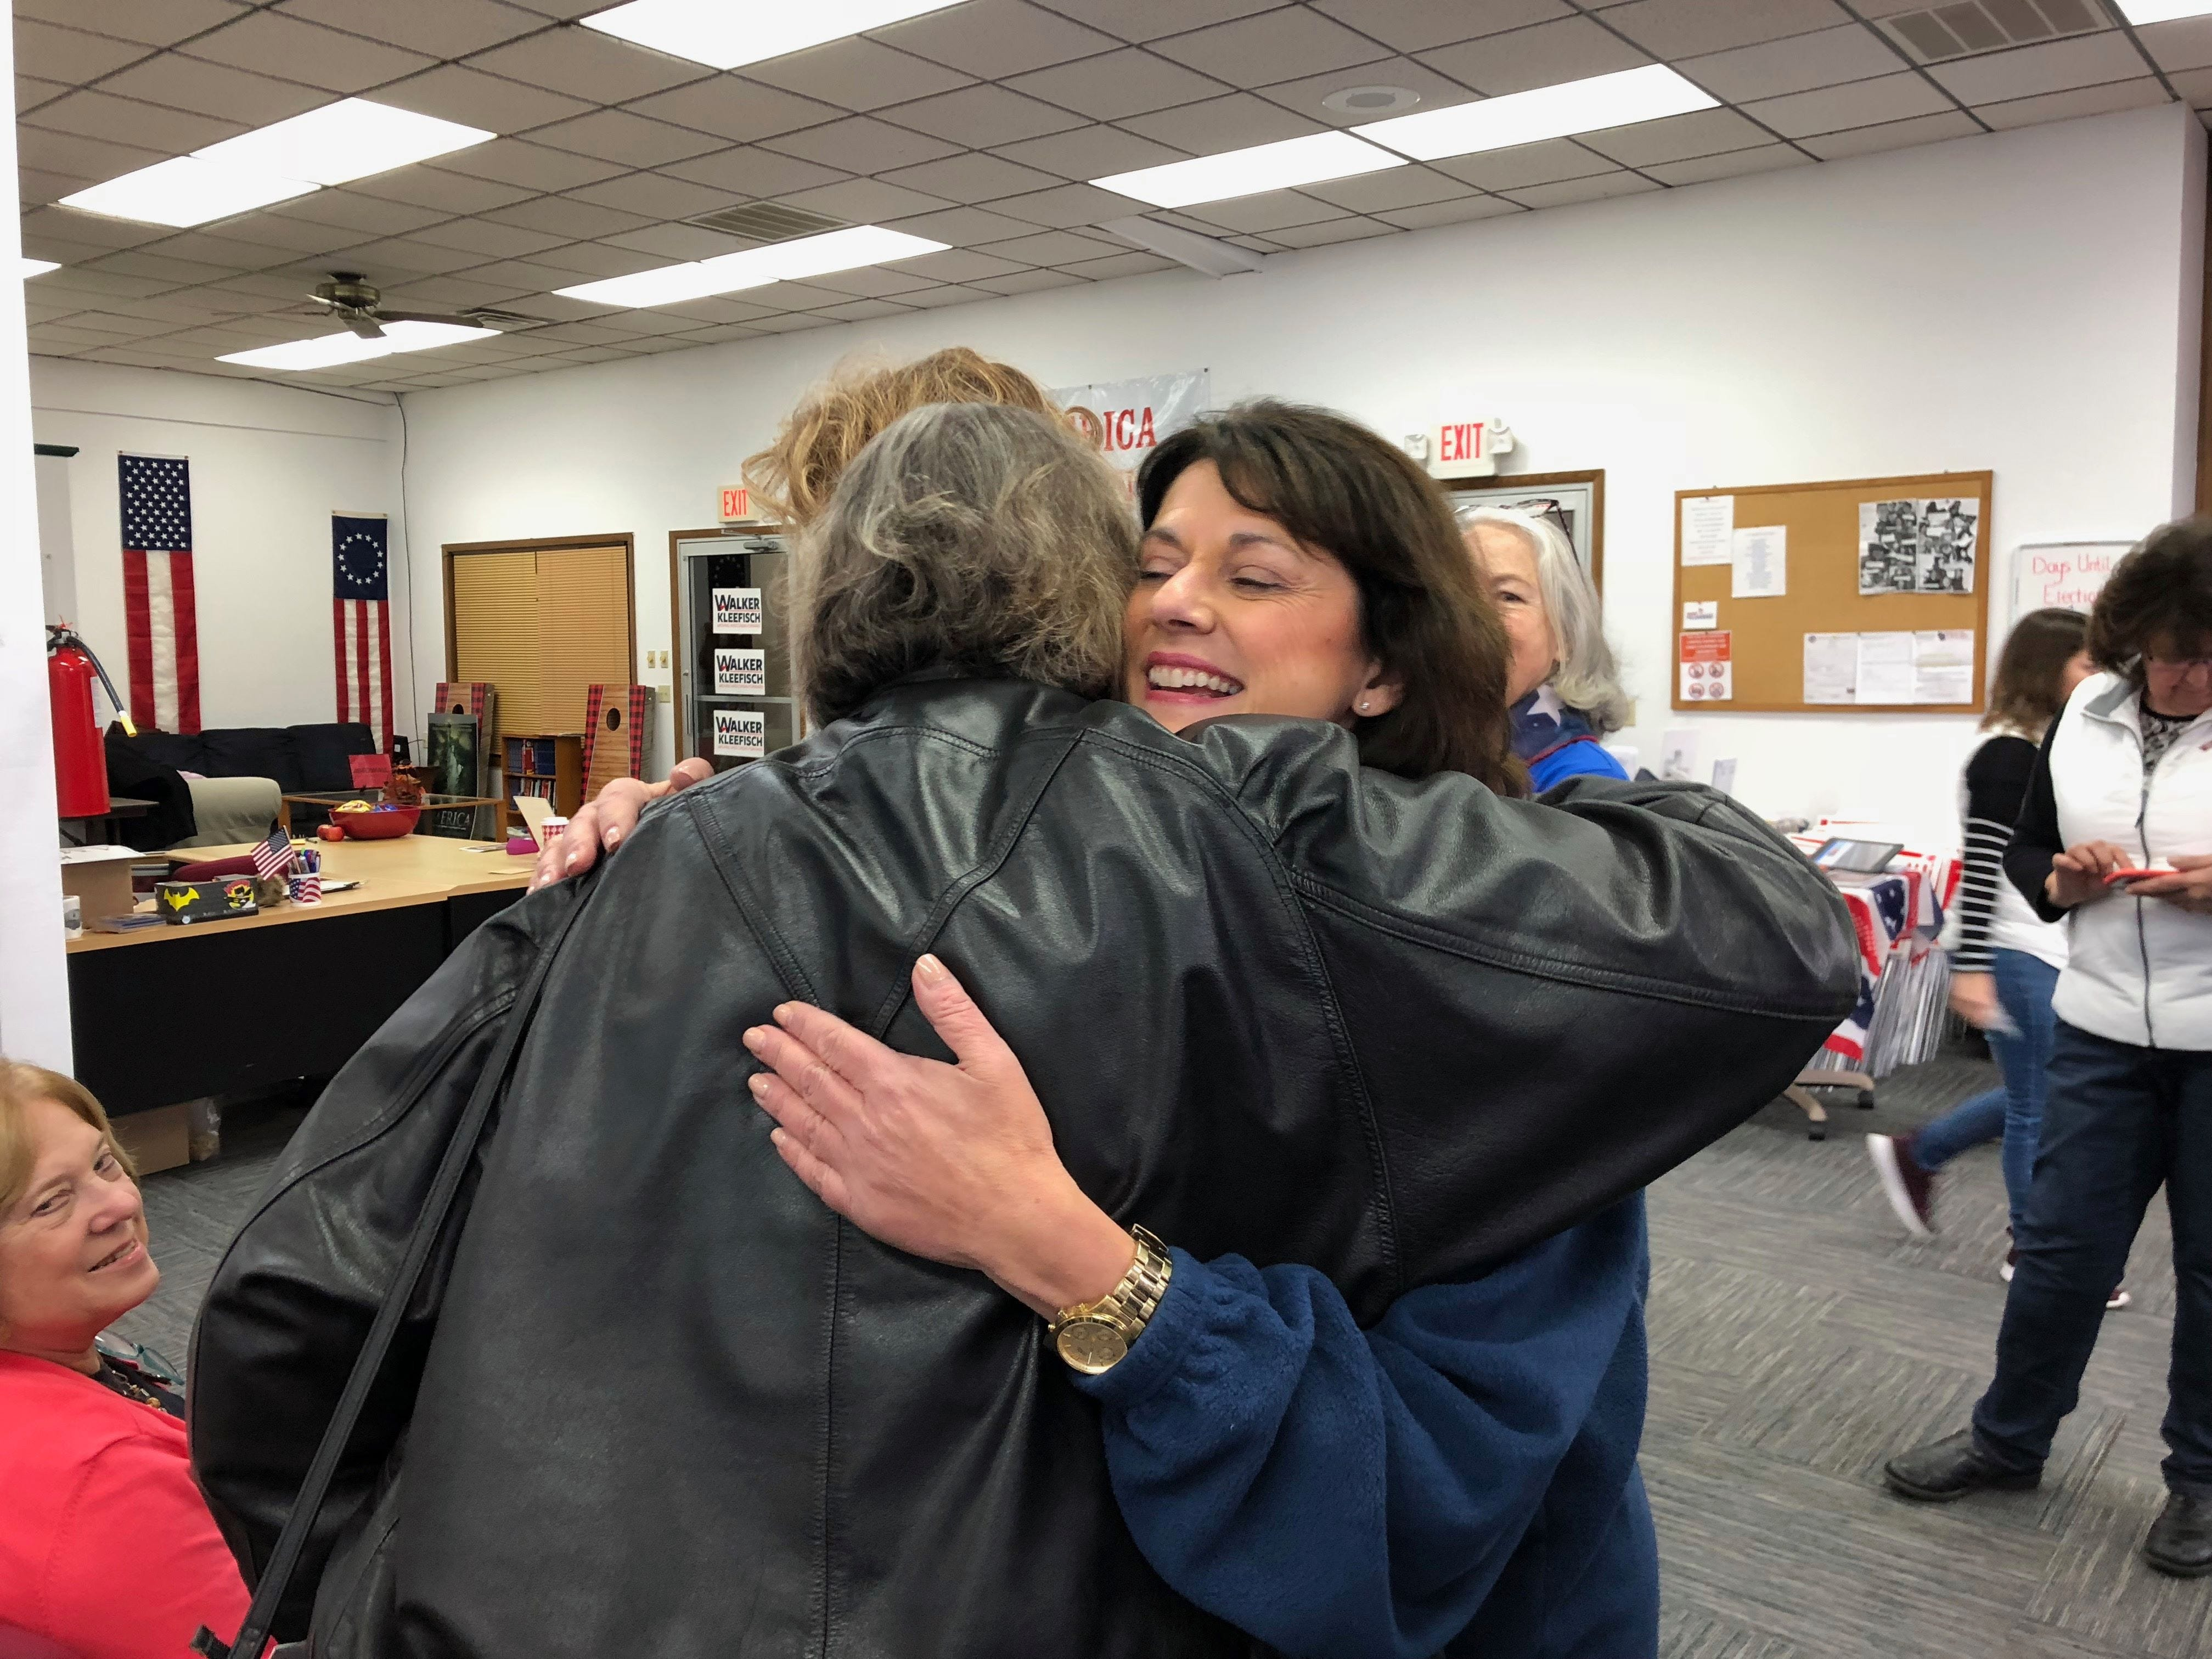 Republican candidate for U.S. Senate Leah Vukmir embraces a supporter at the Marathon County Republican Campaign Headquarters on Nov. 5, 2018, during her final day of campaigning.